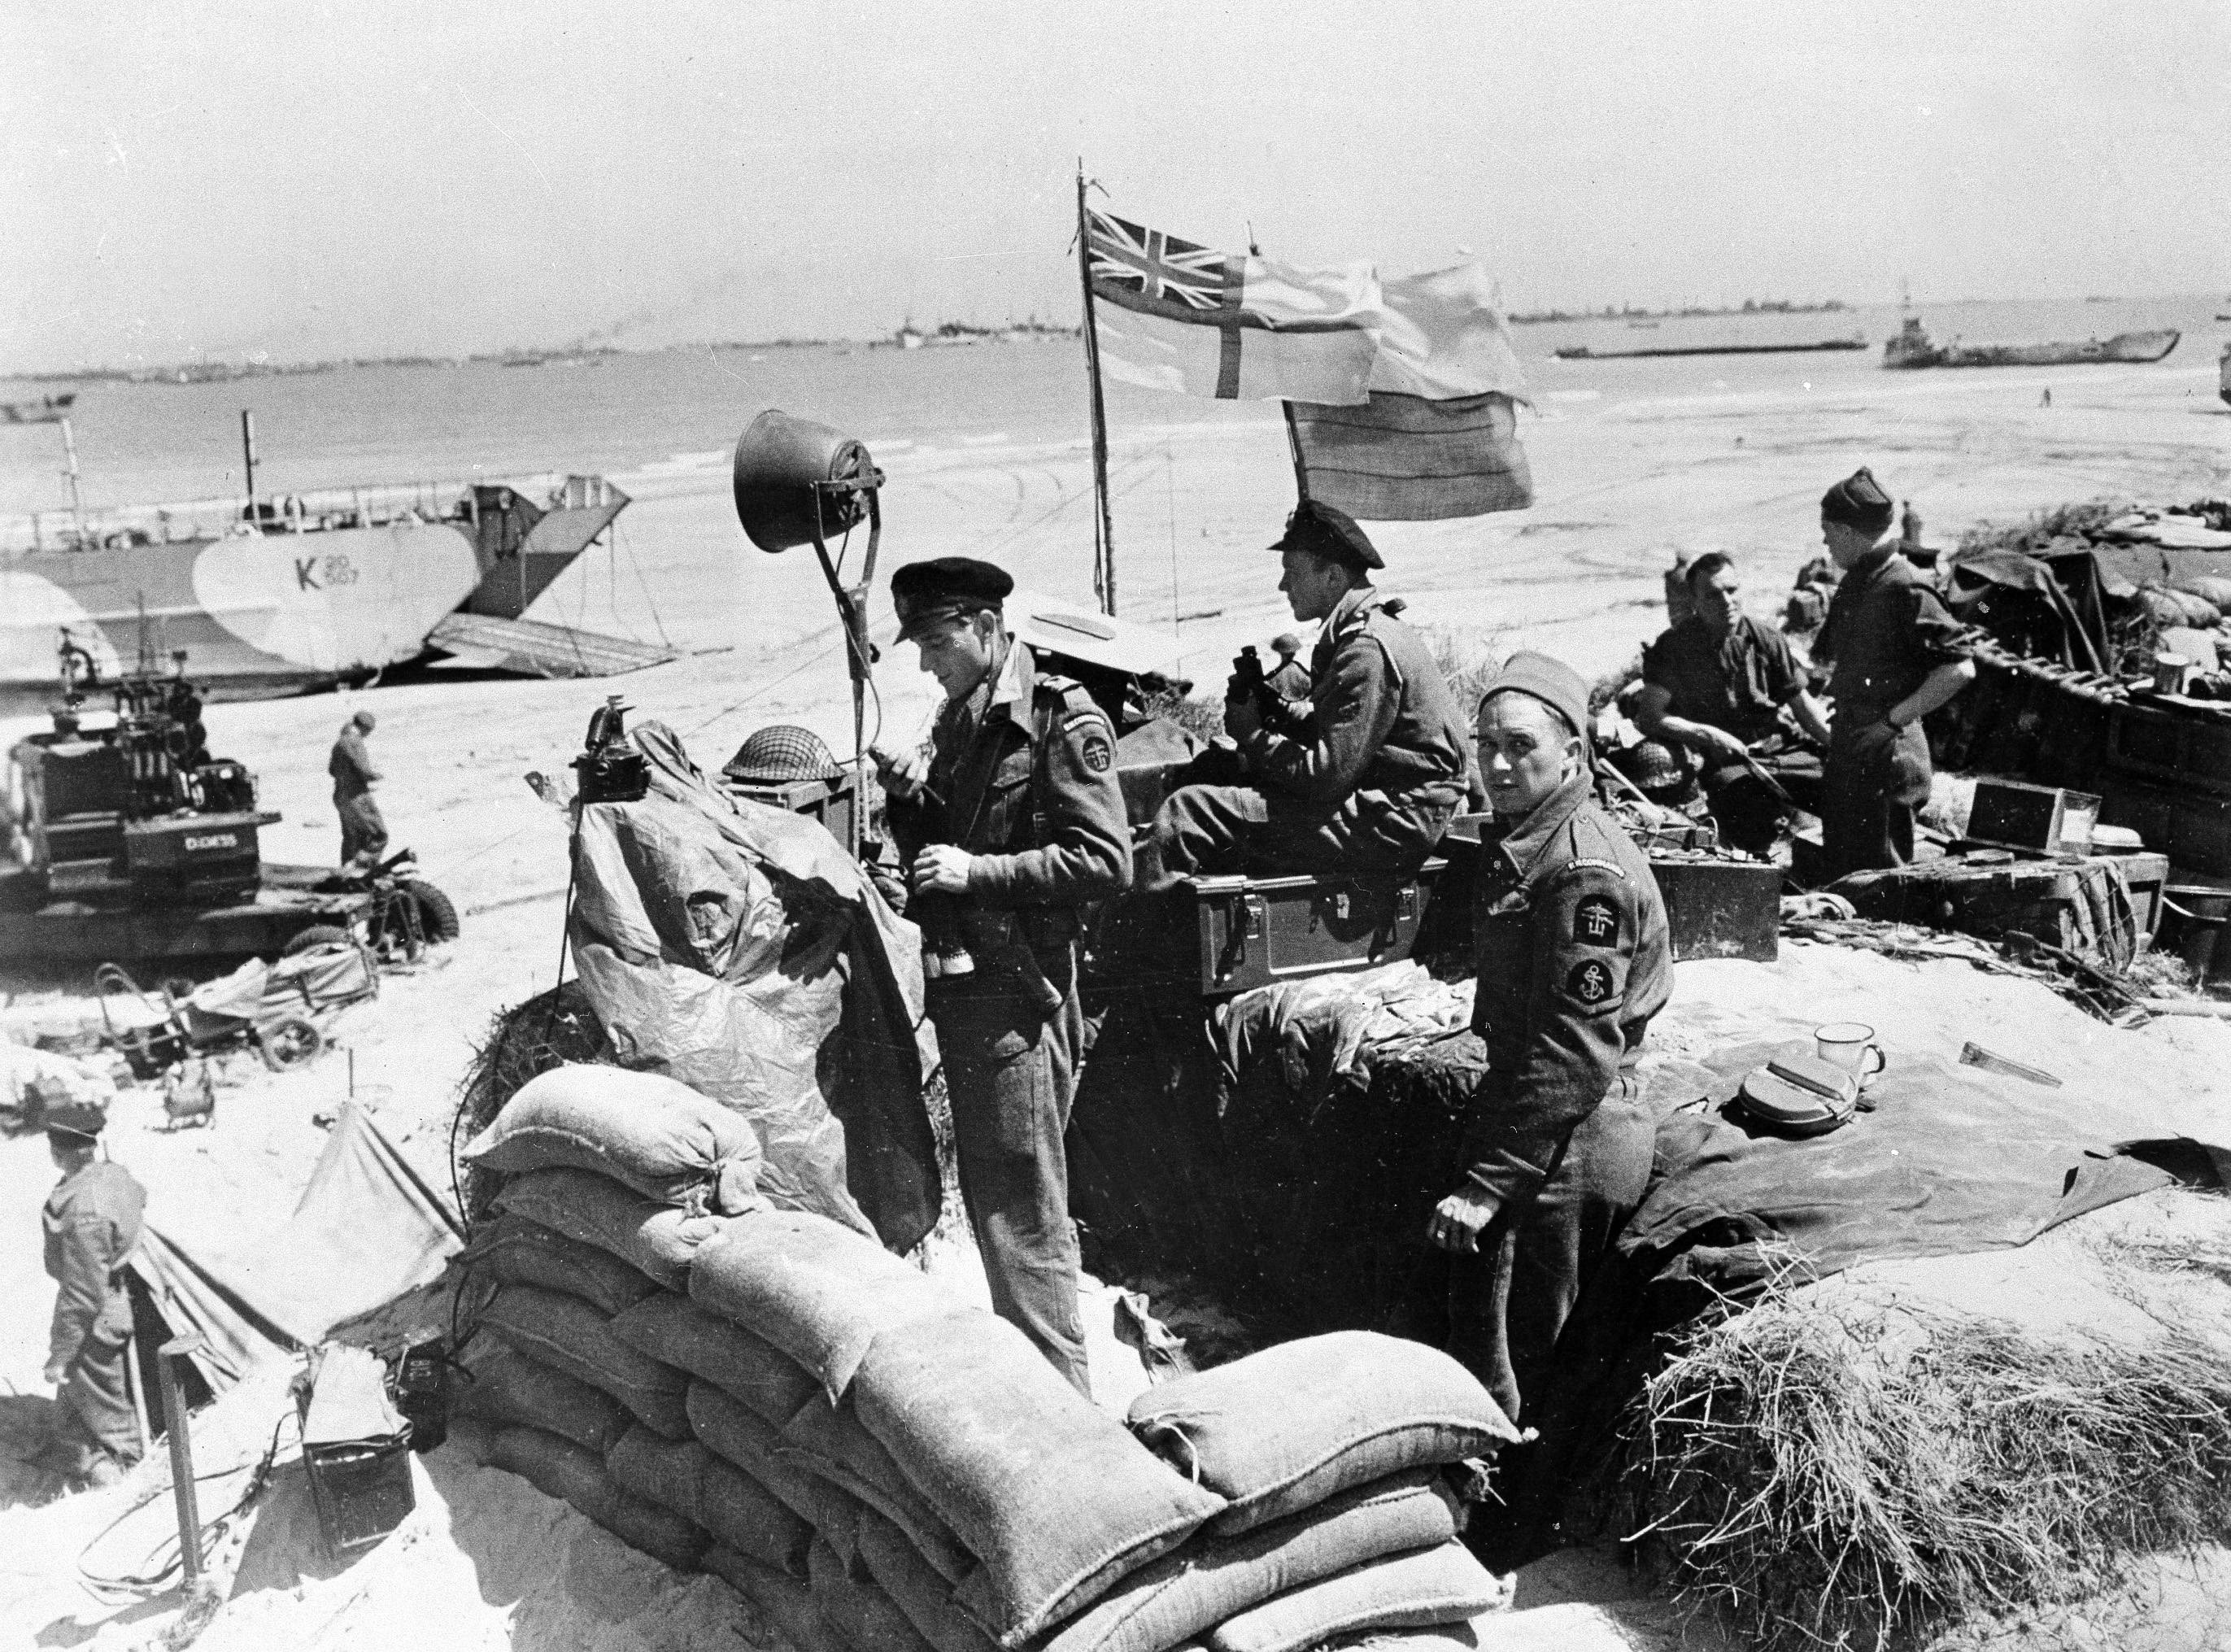 British troops make their way through low water and up the beach after leaving landing craft which transported them across the Channel to the Normandy beachhead for D-Day invasion in France, June 6, 1944 in World War II.